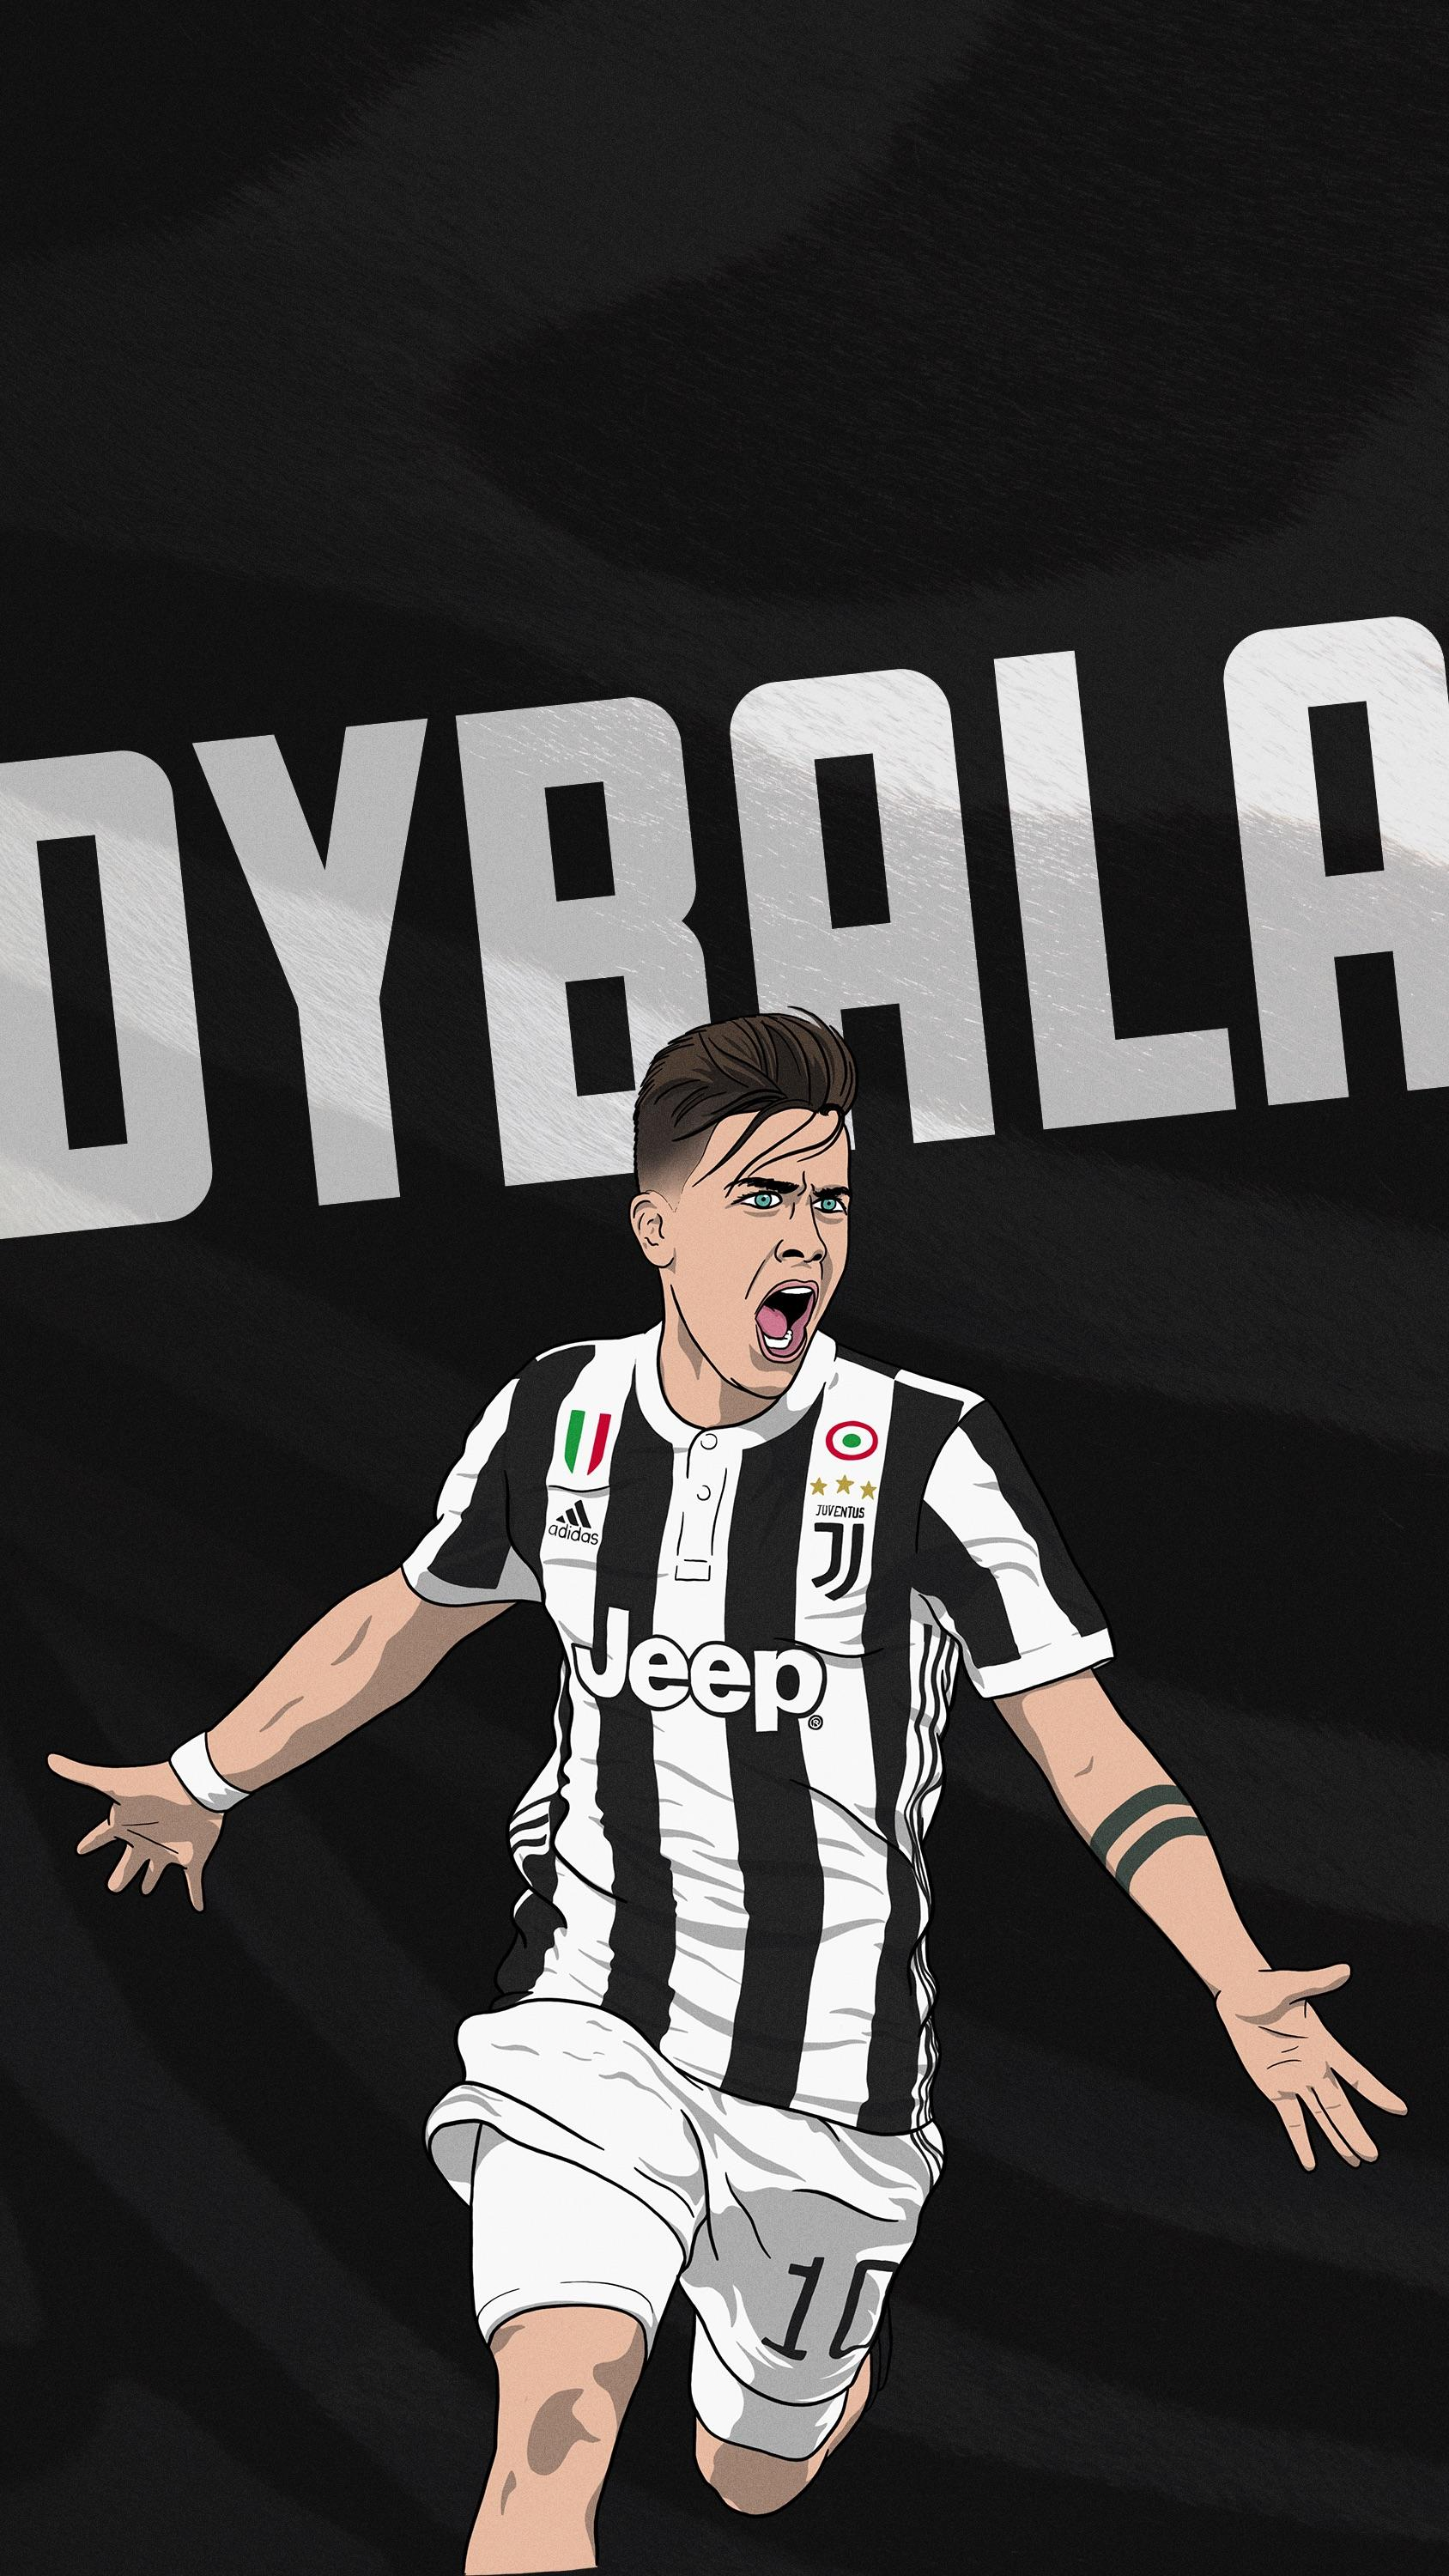 Dybala Wallpaper Juventus Dybala 12261 Hd Wallpaper